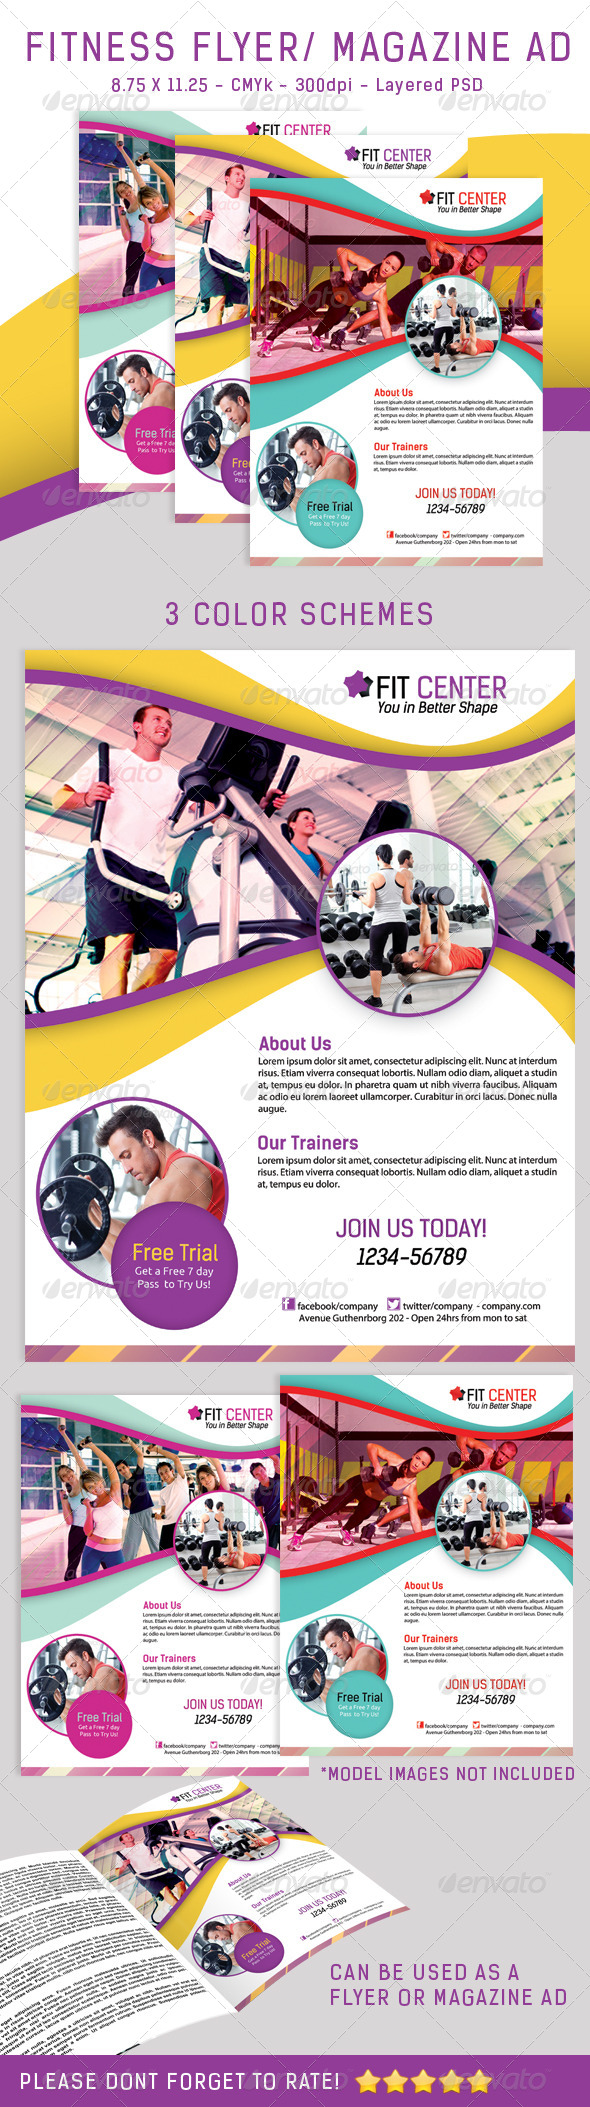 Fitness Flyer/ Magazine Ad In 3 Colors - Sports Events